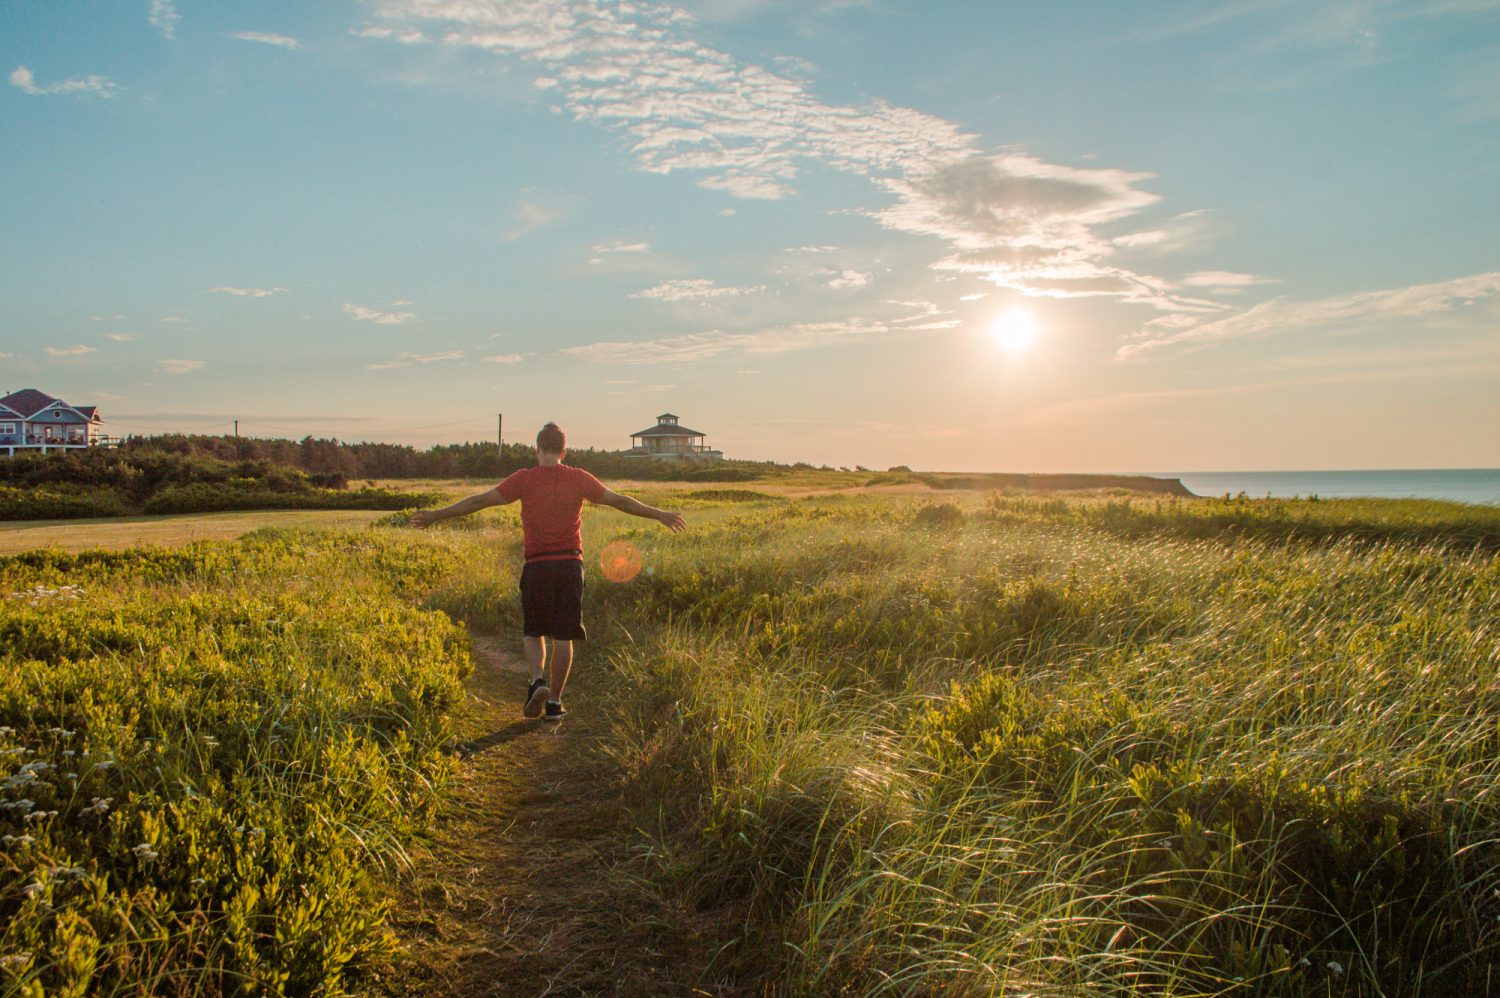 WOW! Prince Edward Island, Canada is definitely an underrated destination. Check out these great photos of Prince Edward Island to see why. #PEI #Canada